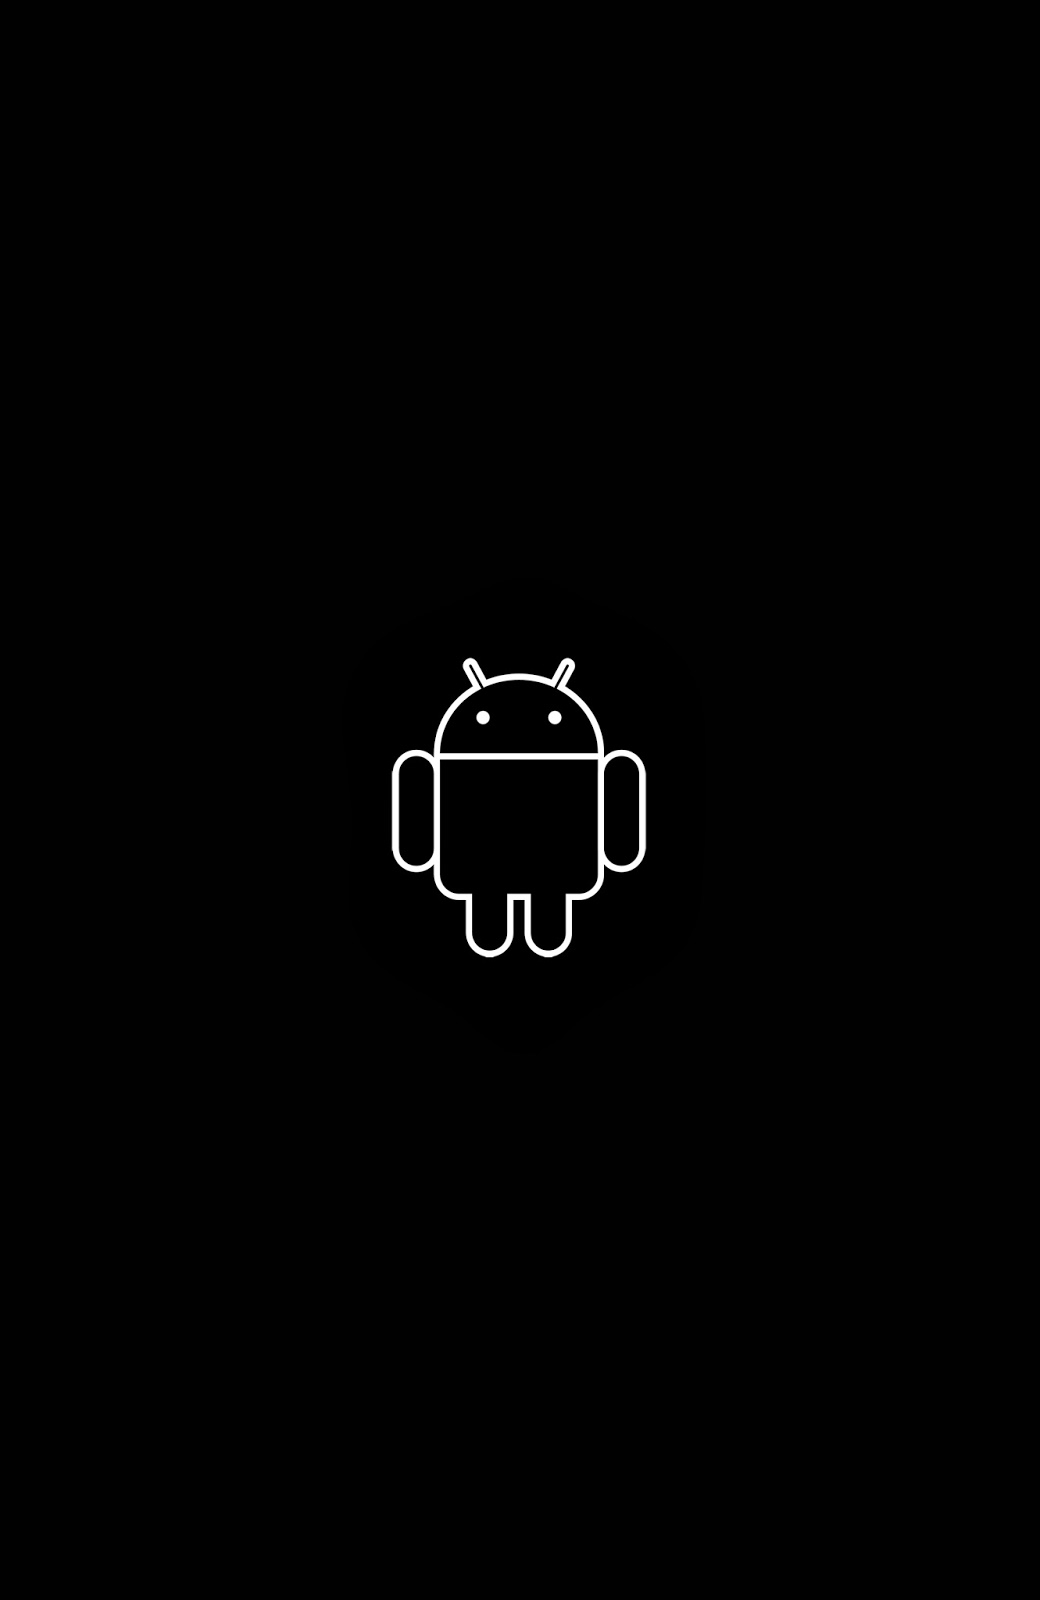 FruityMixer S Wallpapers Black And White Android Simple